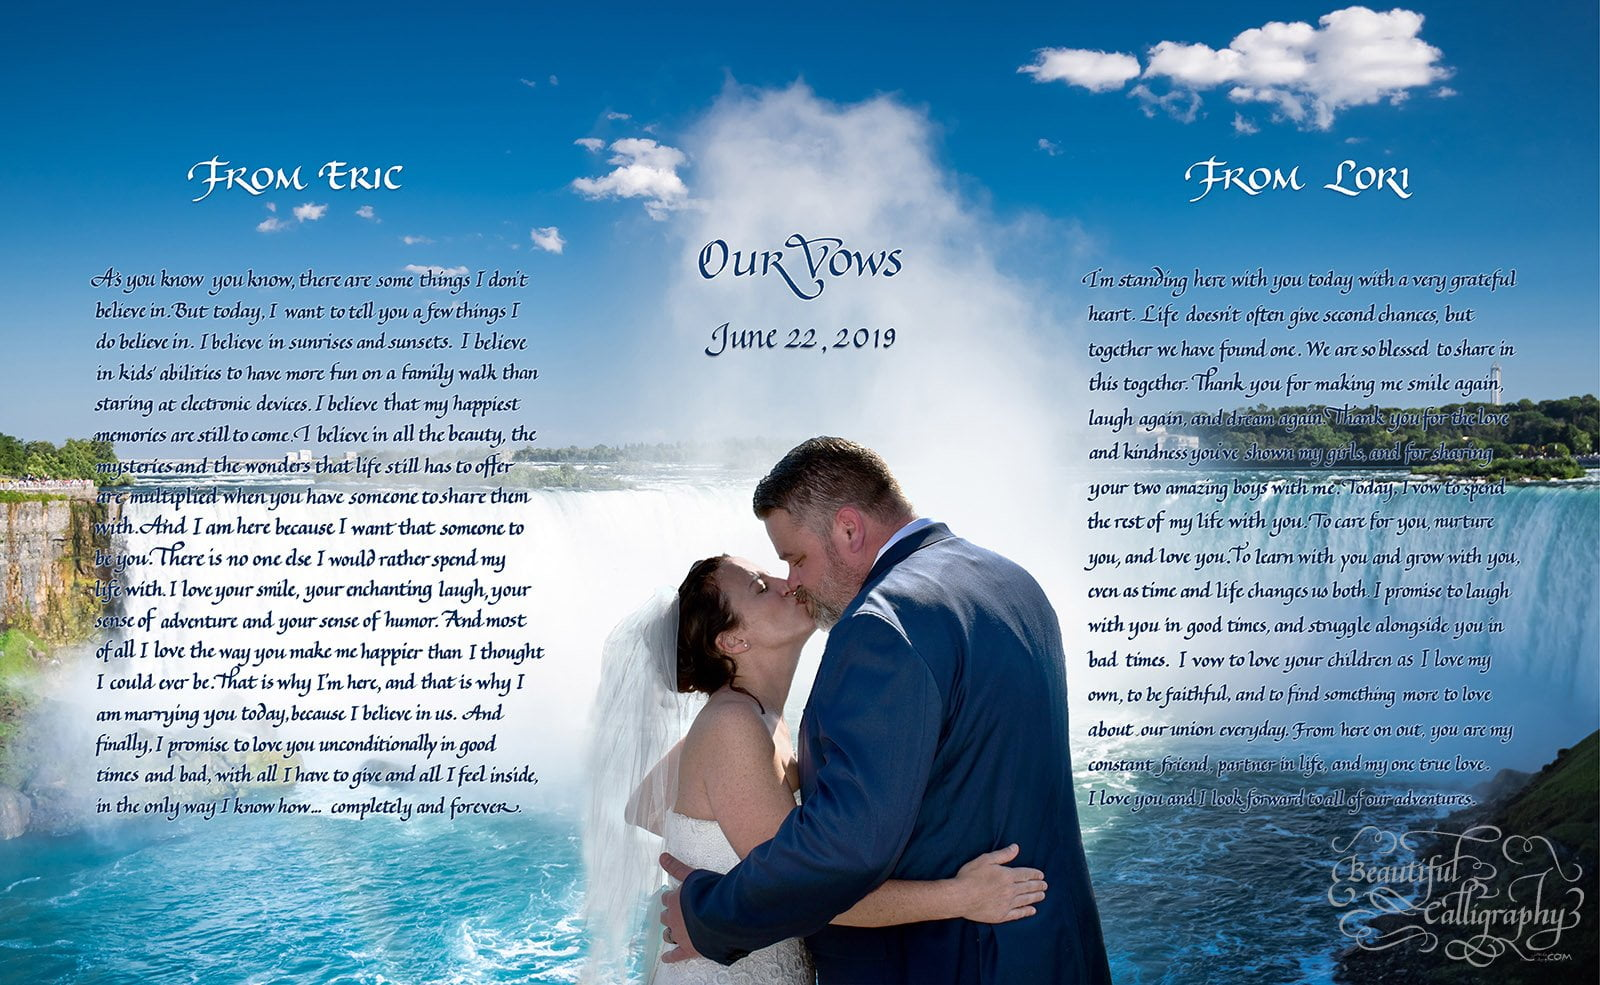 Couples Marriage Vows in calligraphy with beautiful wedding photo